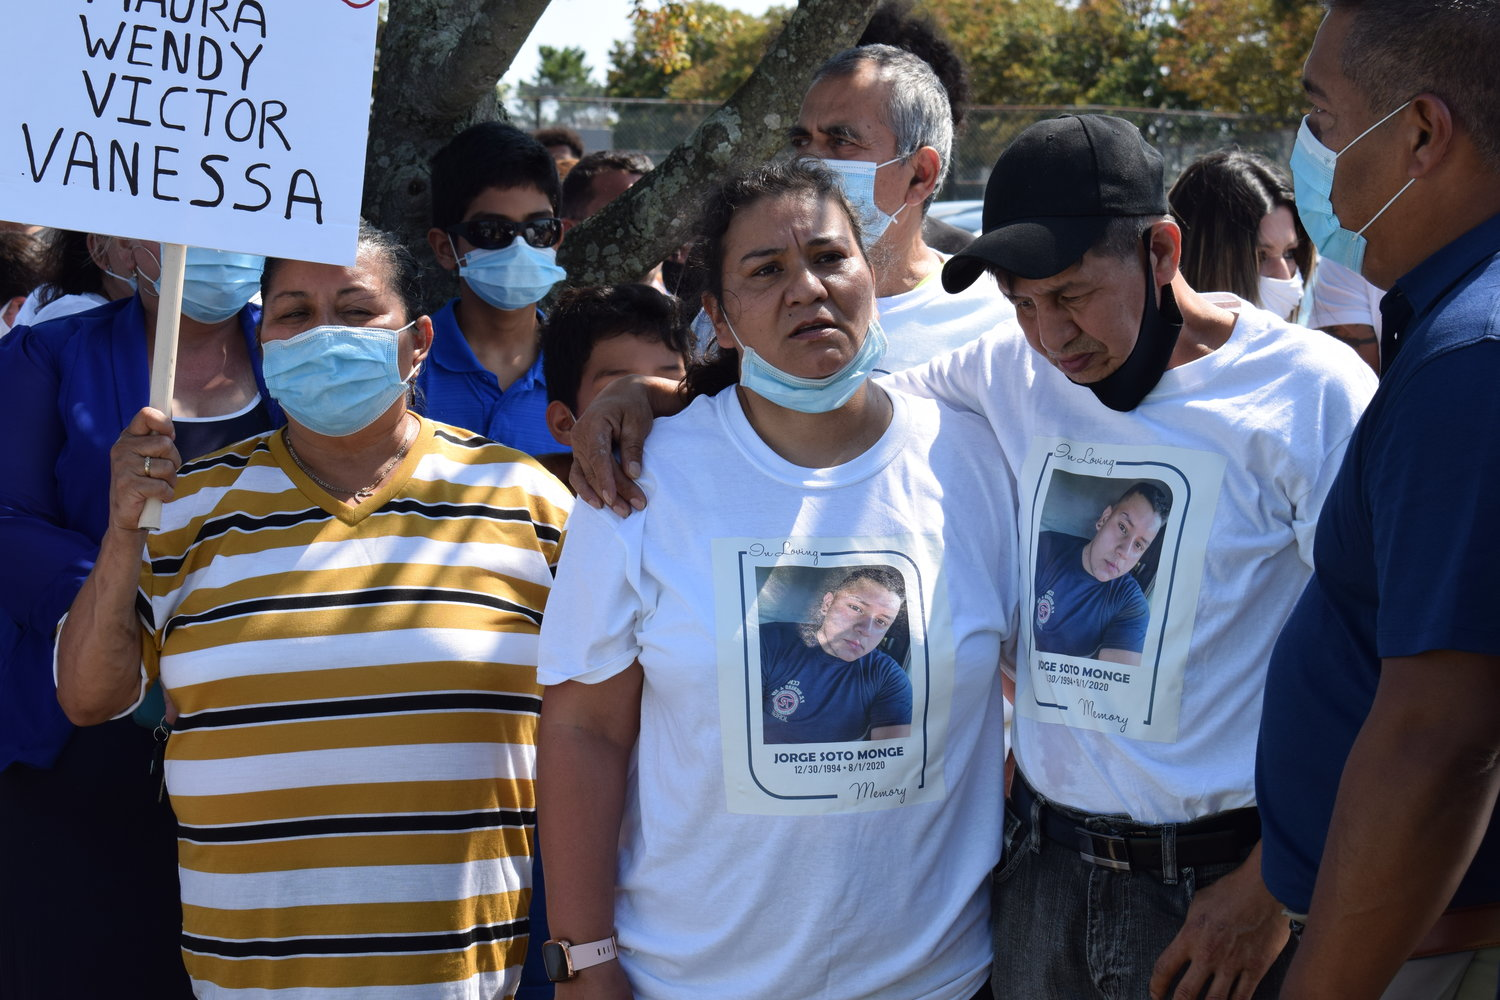 Freeporters Martha Martinez, left, and Rosa and Jose Soto Monge led a protest to demand justice for their children after a boat crash hospitalized Maura Martinez, 29, and killed Jorge Soto Monge, 25, on Aug. 1.